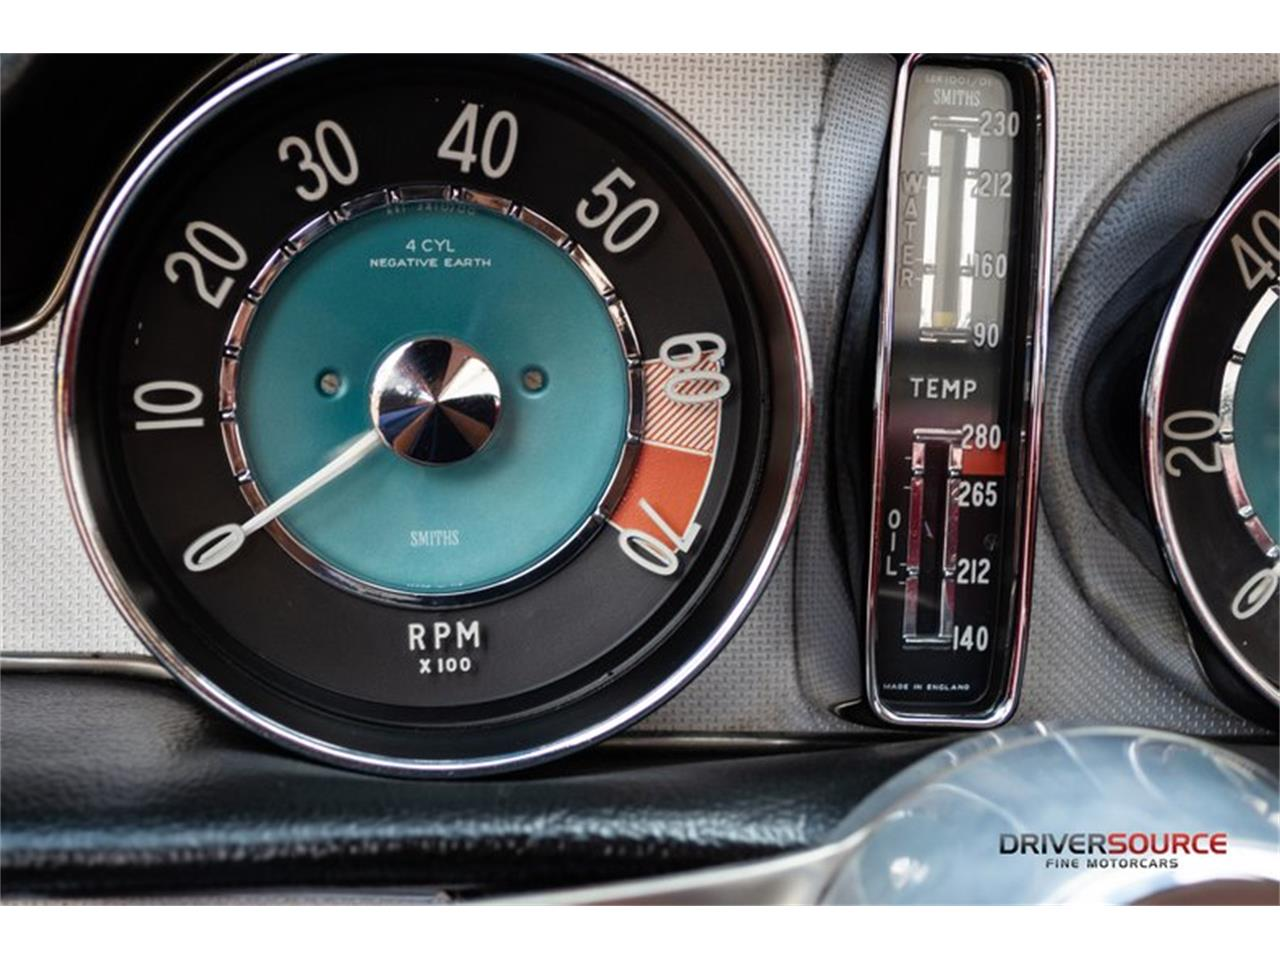 Large Picture of 1964 P1800E Offered by Driversource - NNM3